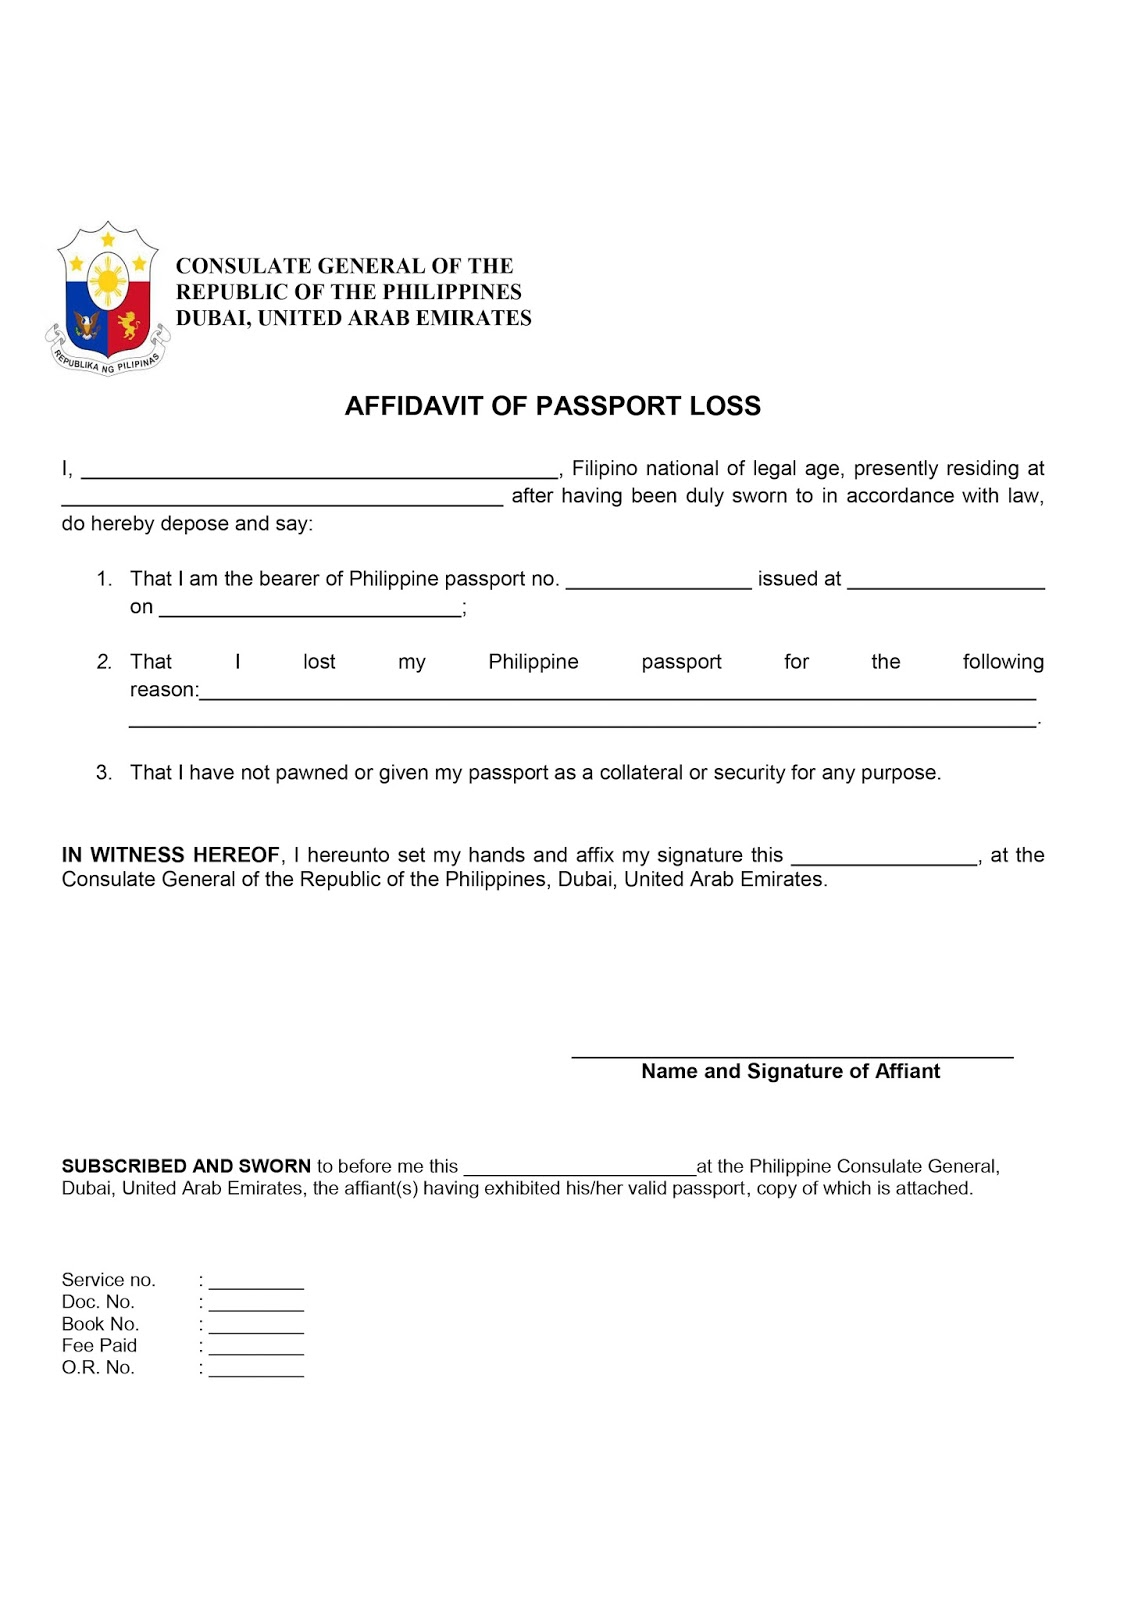 Affidavit Of Loss Template Affidavit%252Bof%252BPassport%252BLoss Affidavit  Of Loss Templatehtml